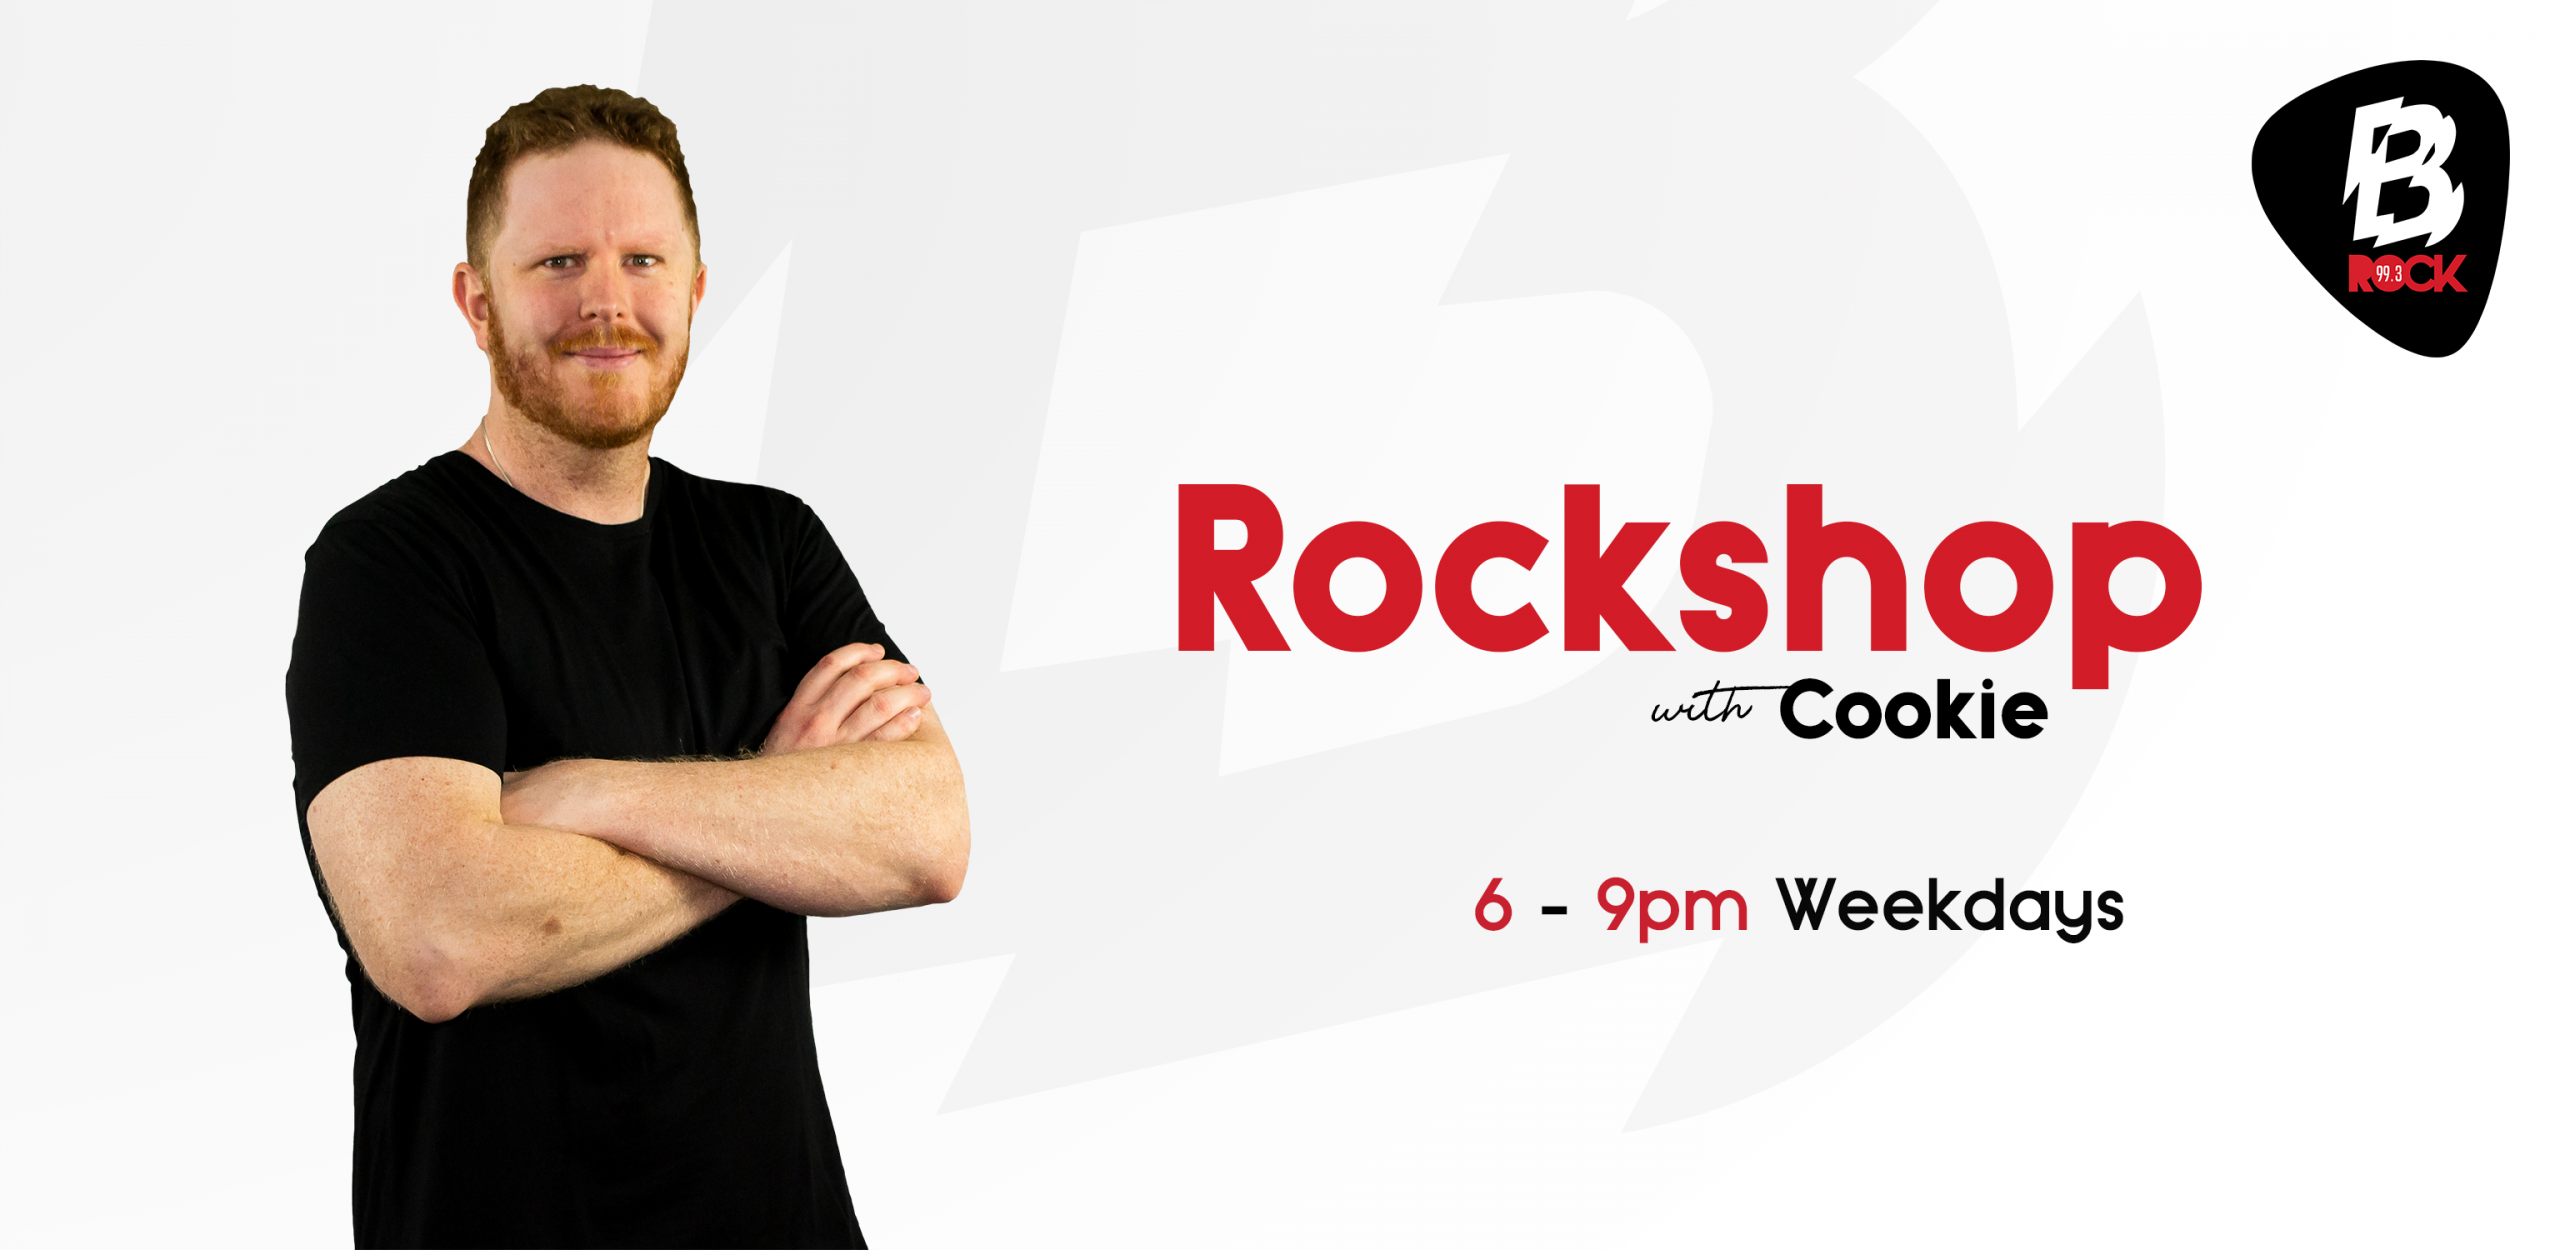 Feature: http://www.brockfm.com.au/the-rockshop-with-cookie/